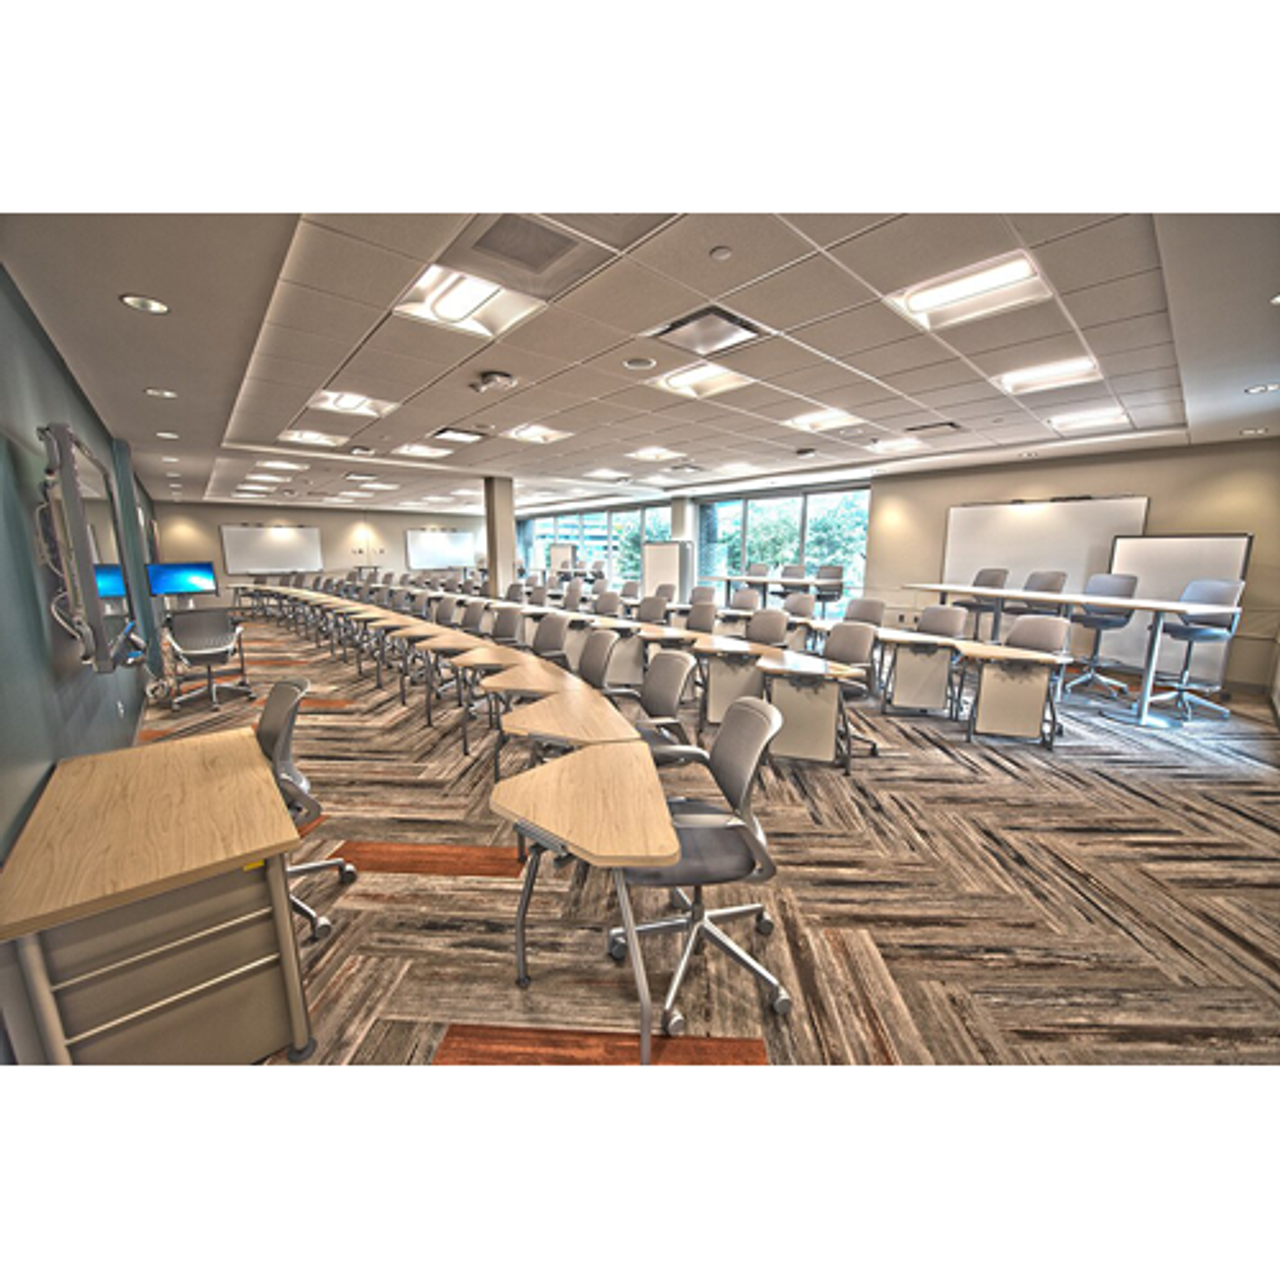 LED 2' by 4' Adjustable Troffer, perfect for offices and schools.